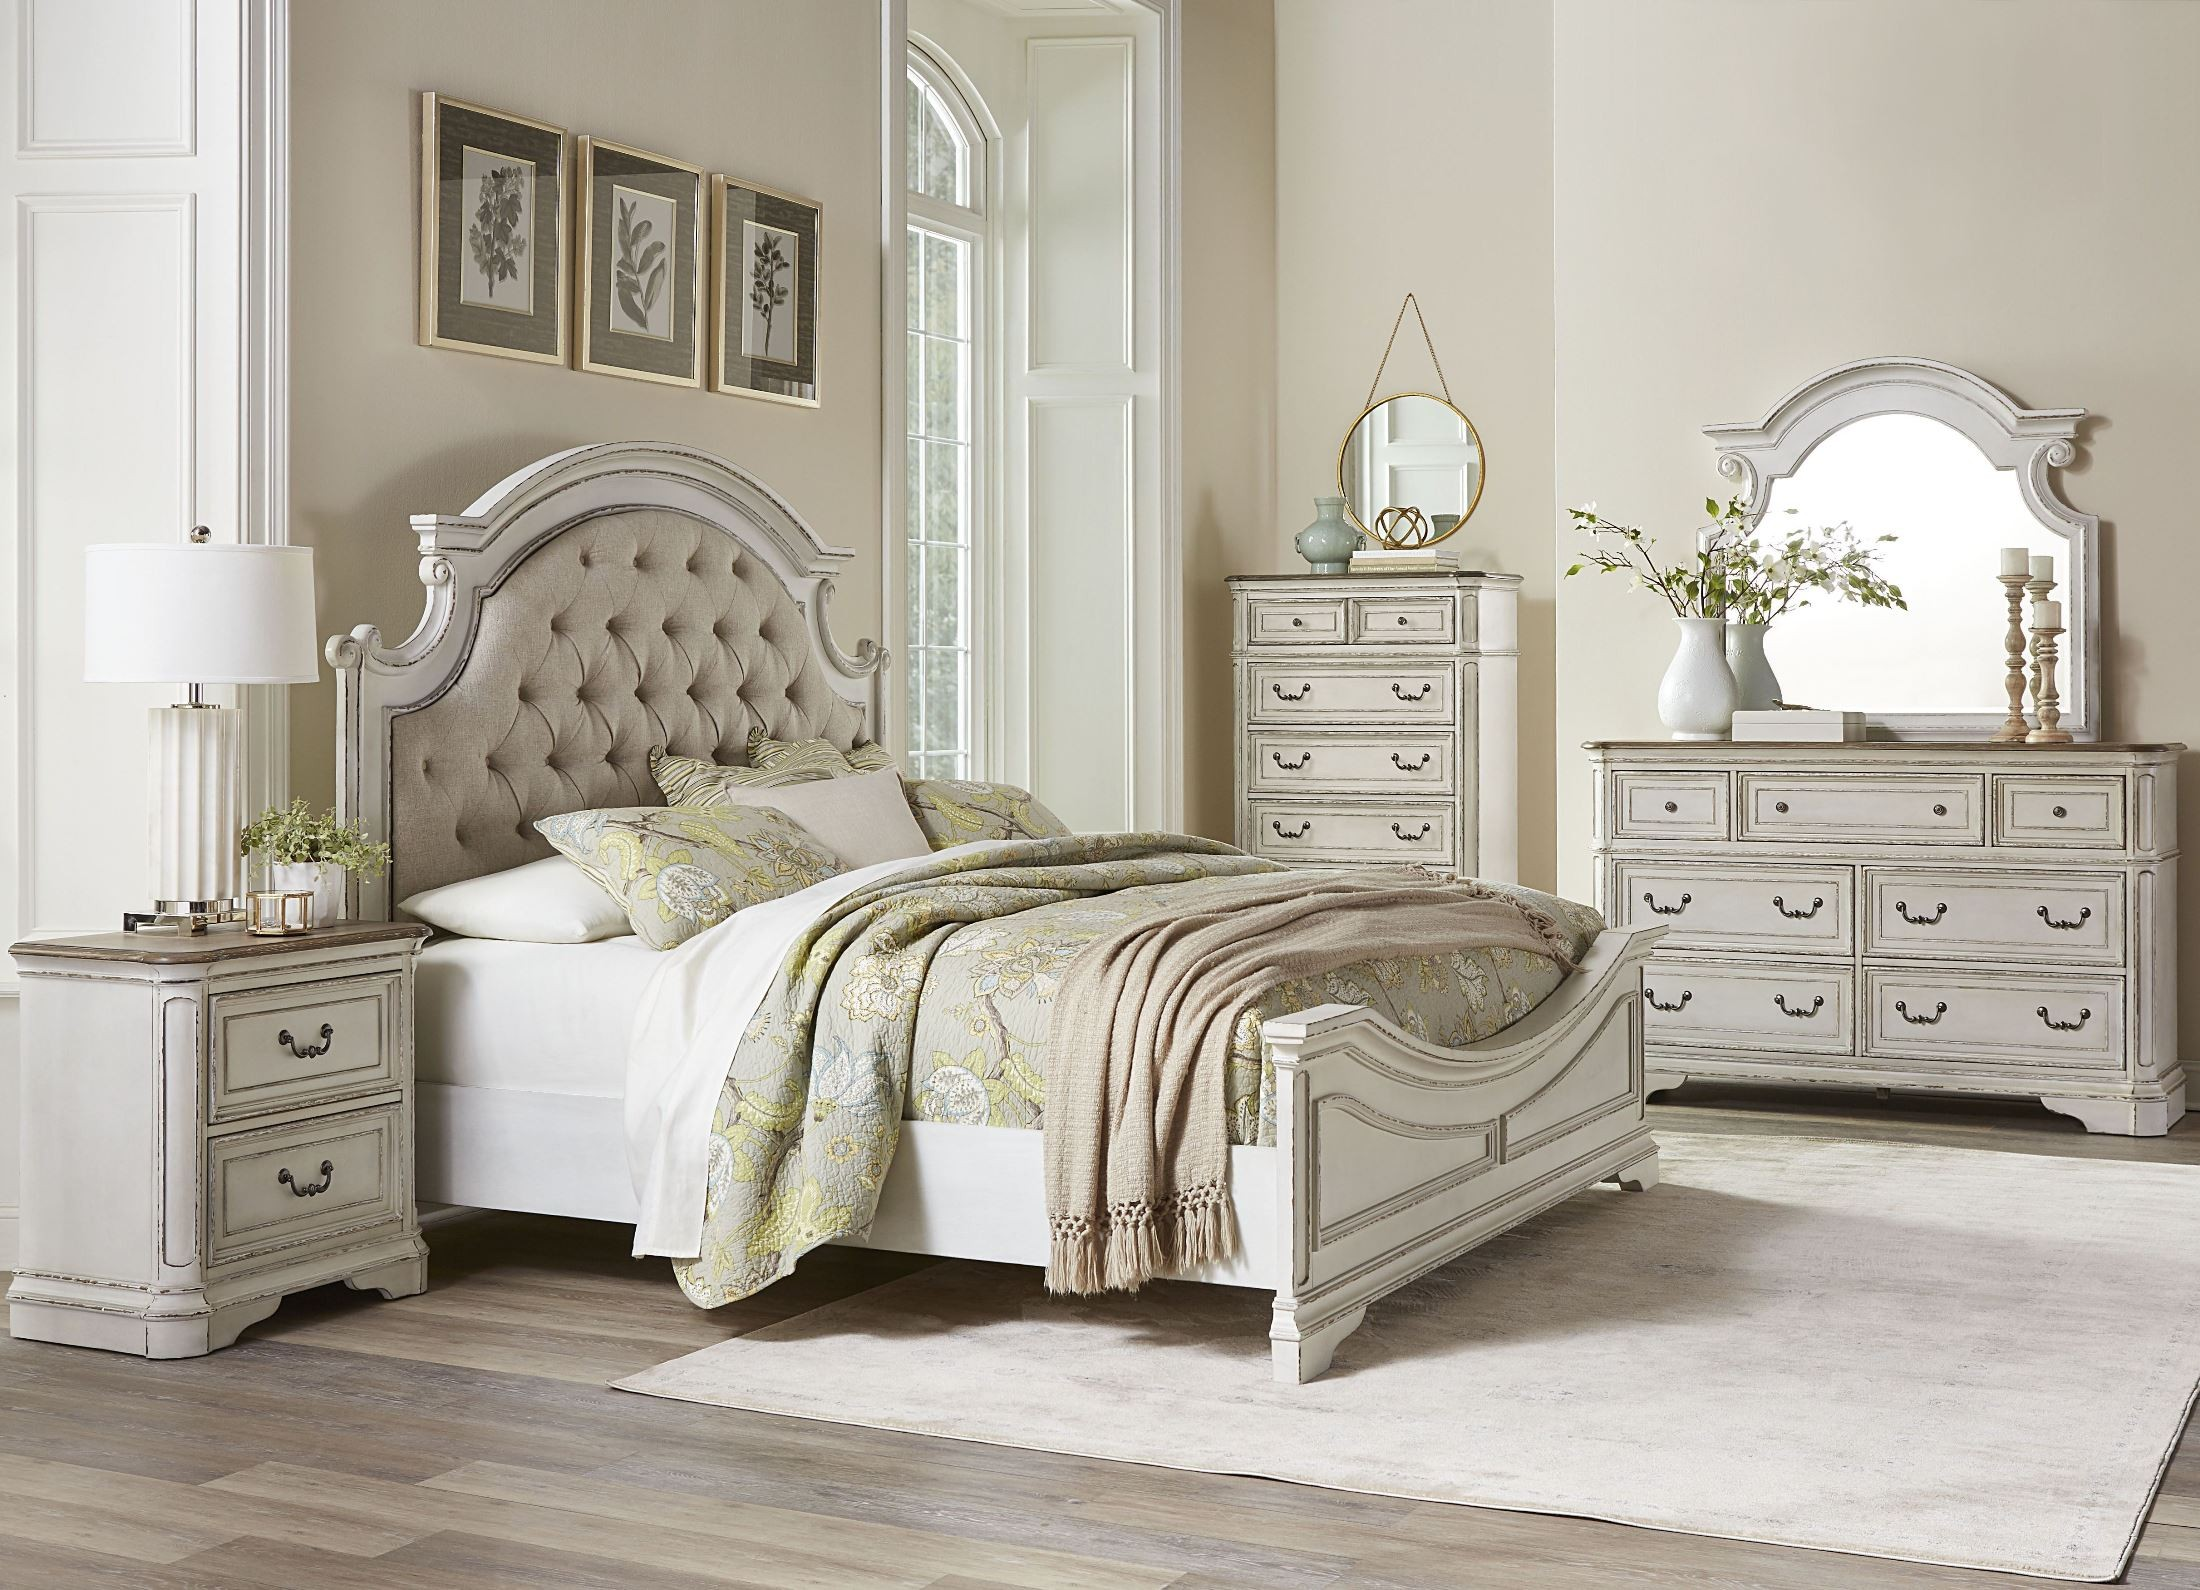 Stevenson manor distressed white upholstered panel bedroom - Distressed bedroom furniture sets ...